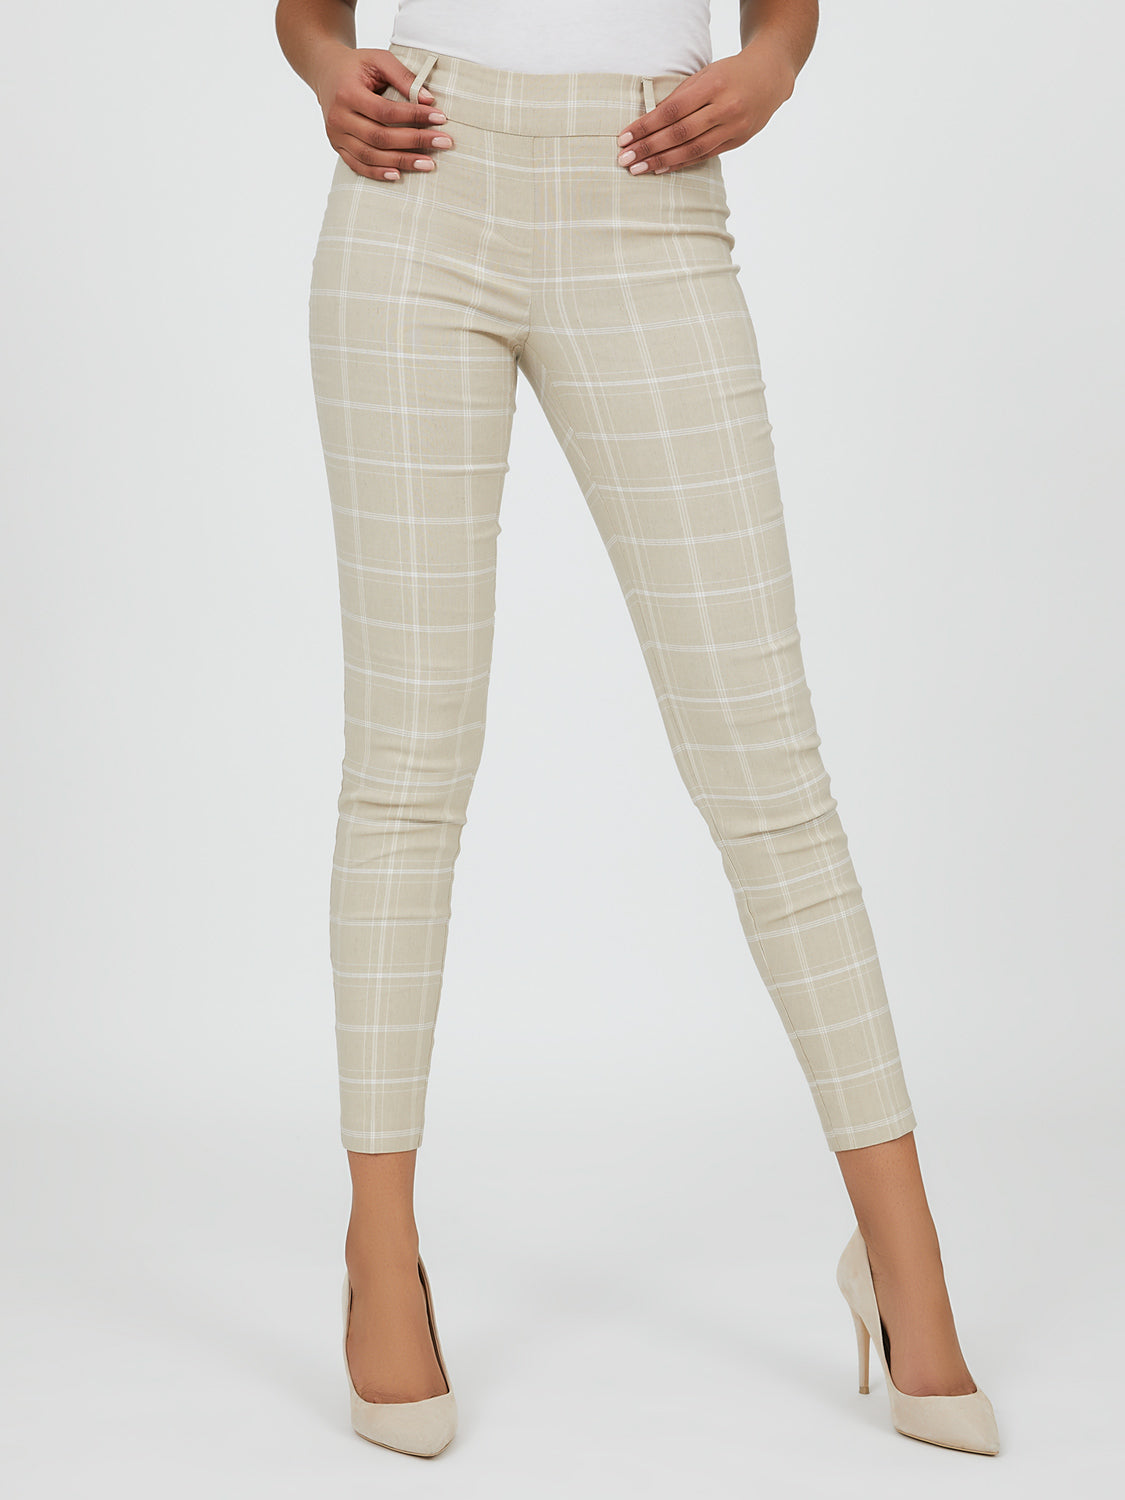 Belted Pull-On Slim Fit Pant